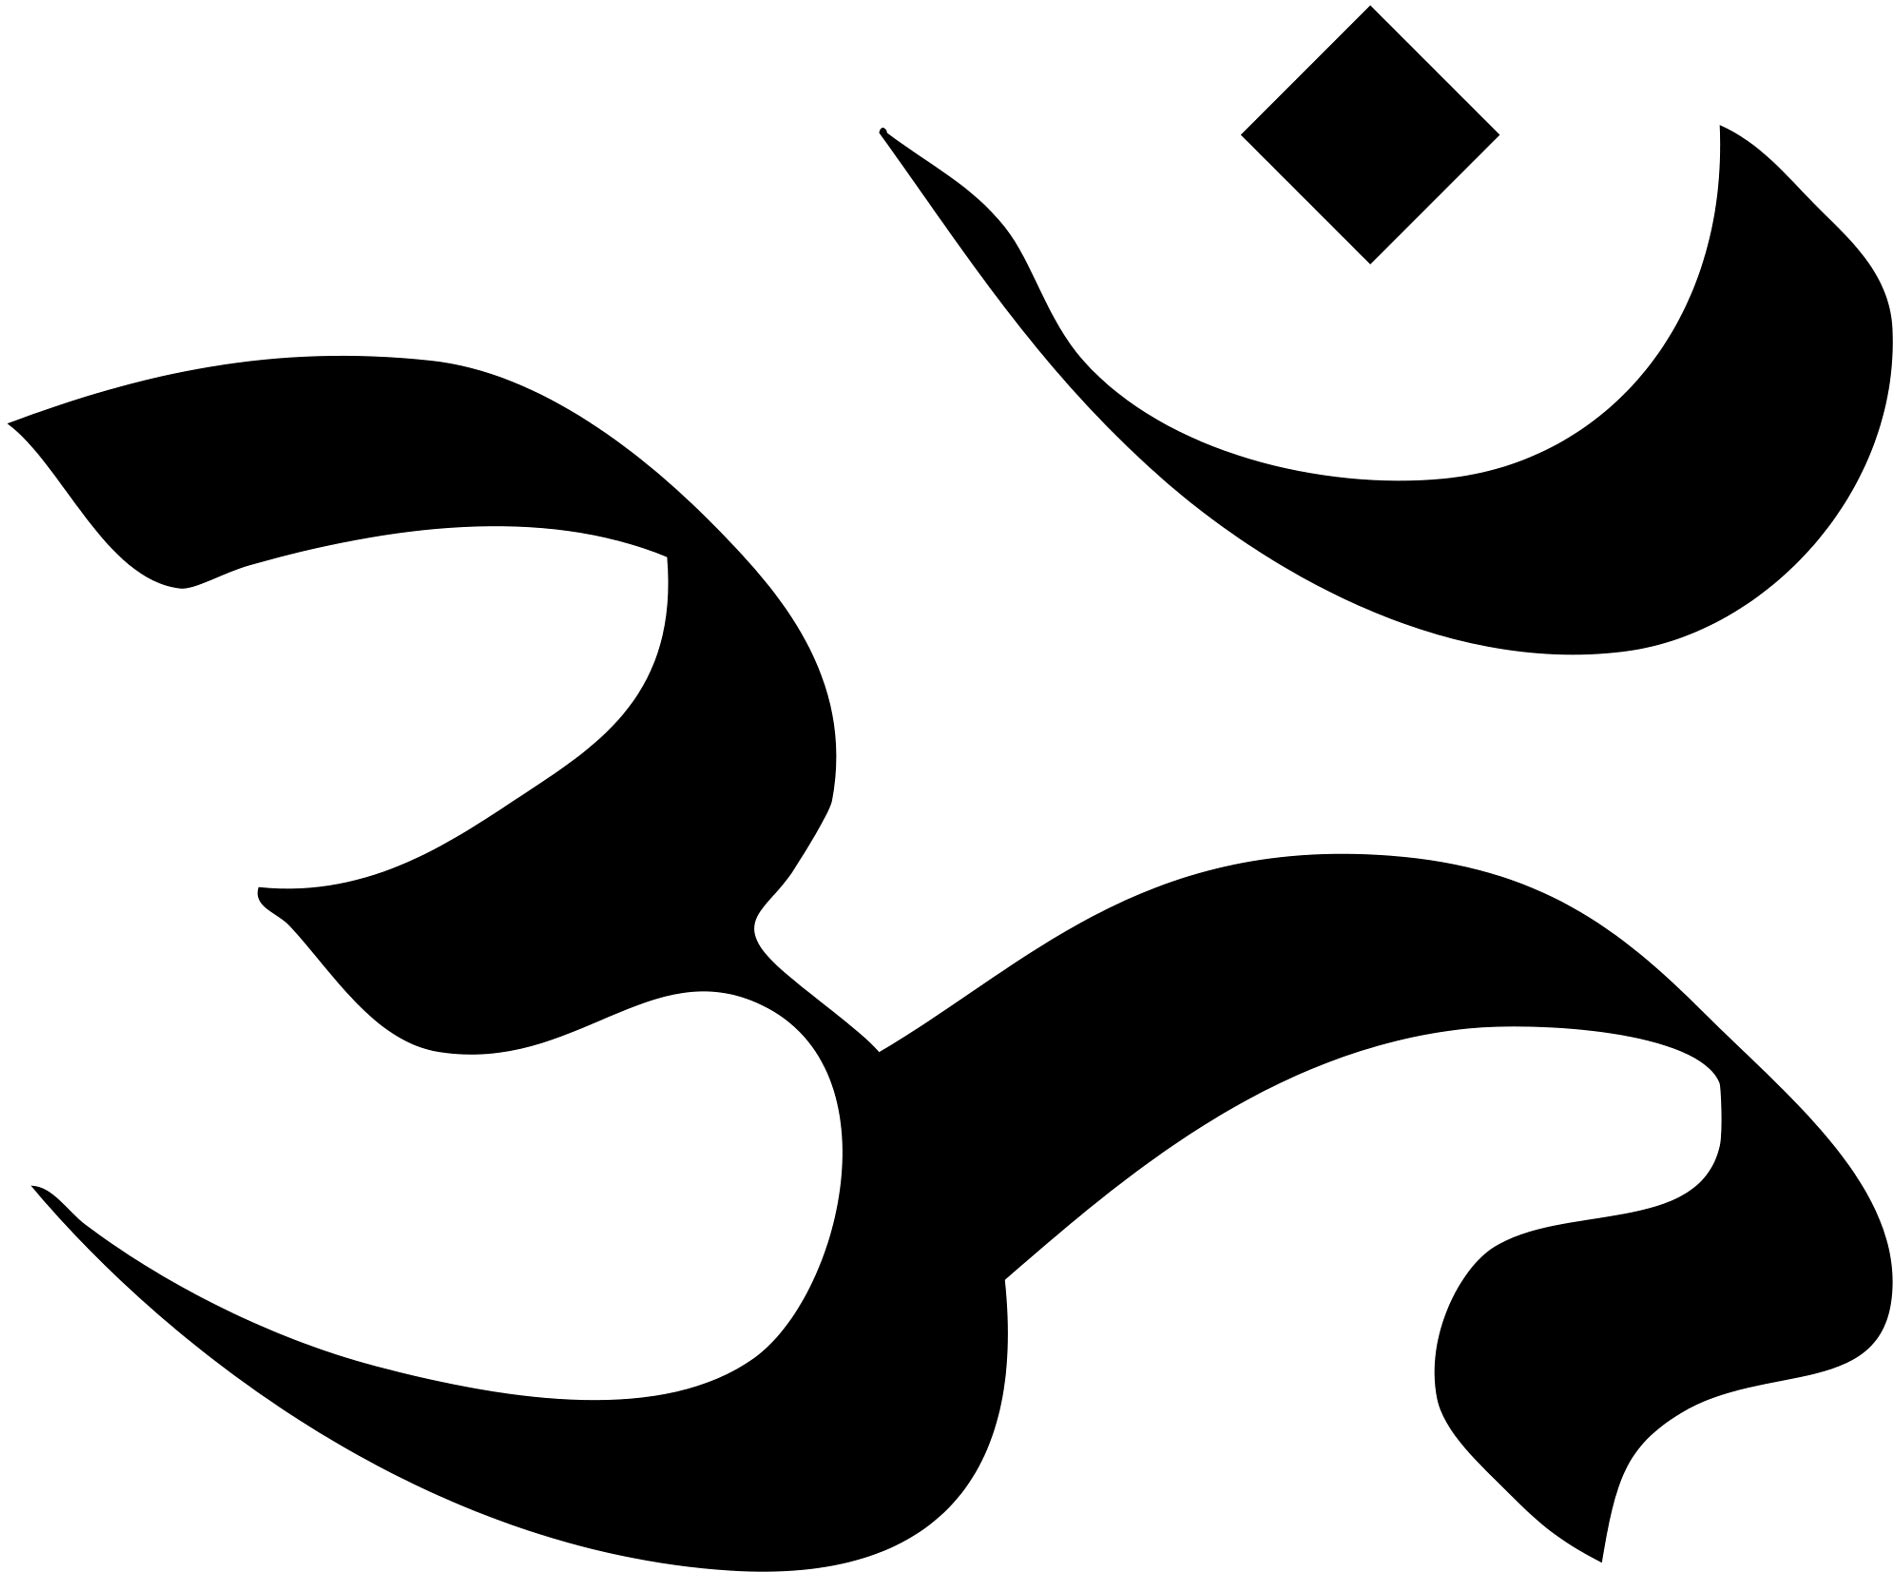 this symbol represents the three aspects of god the brahma a the